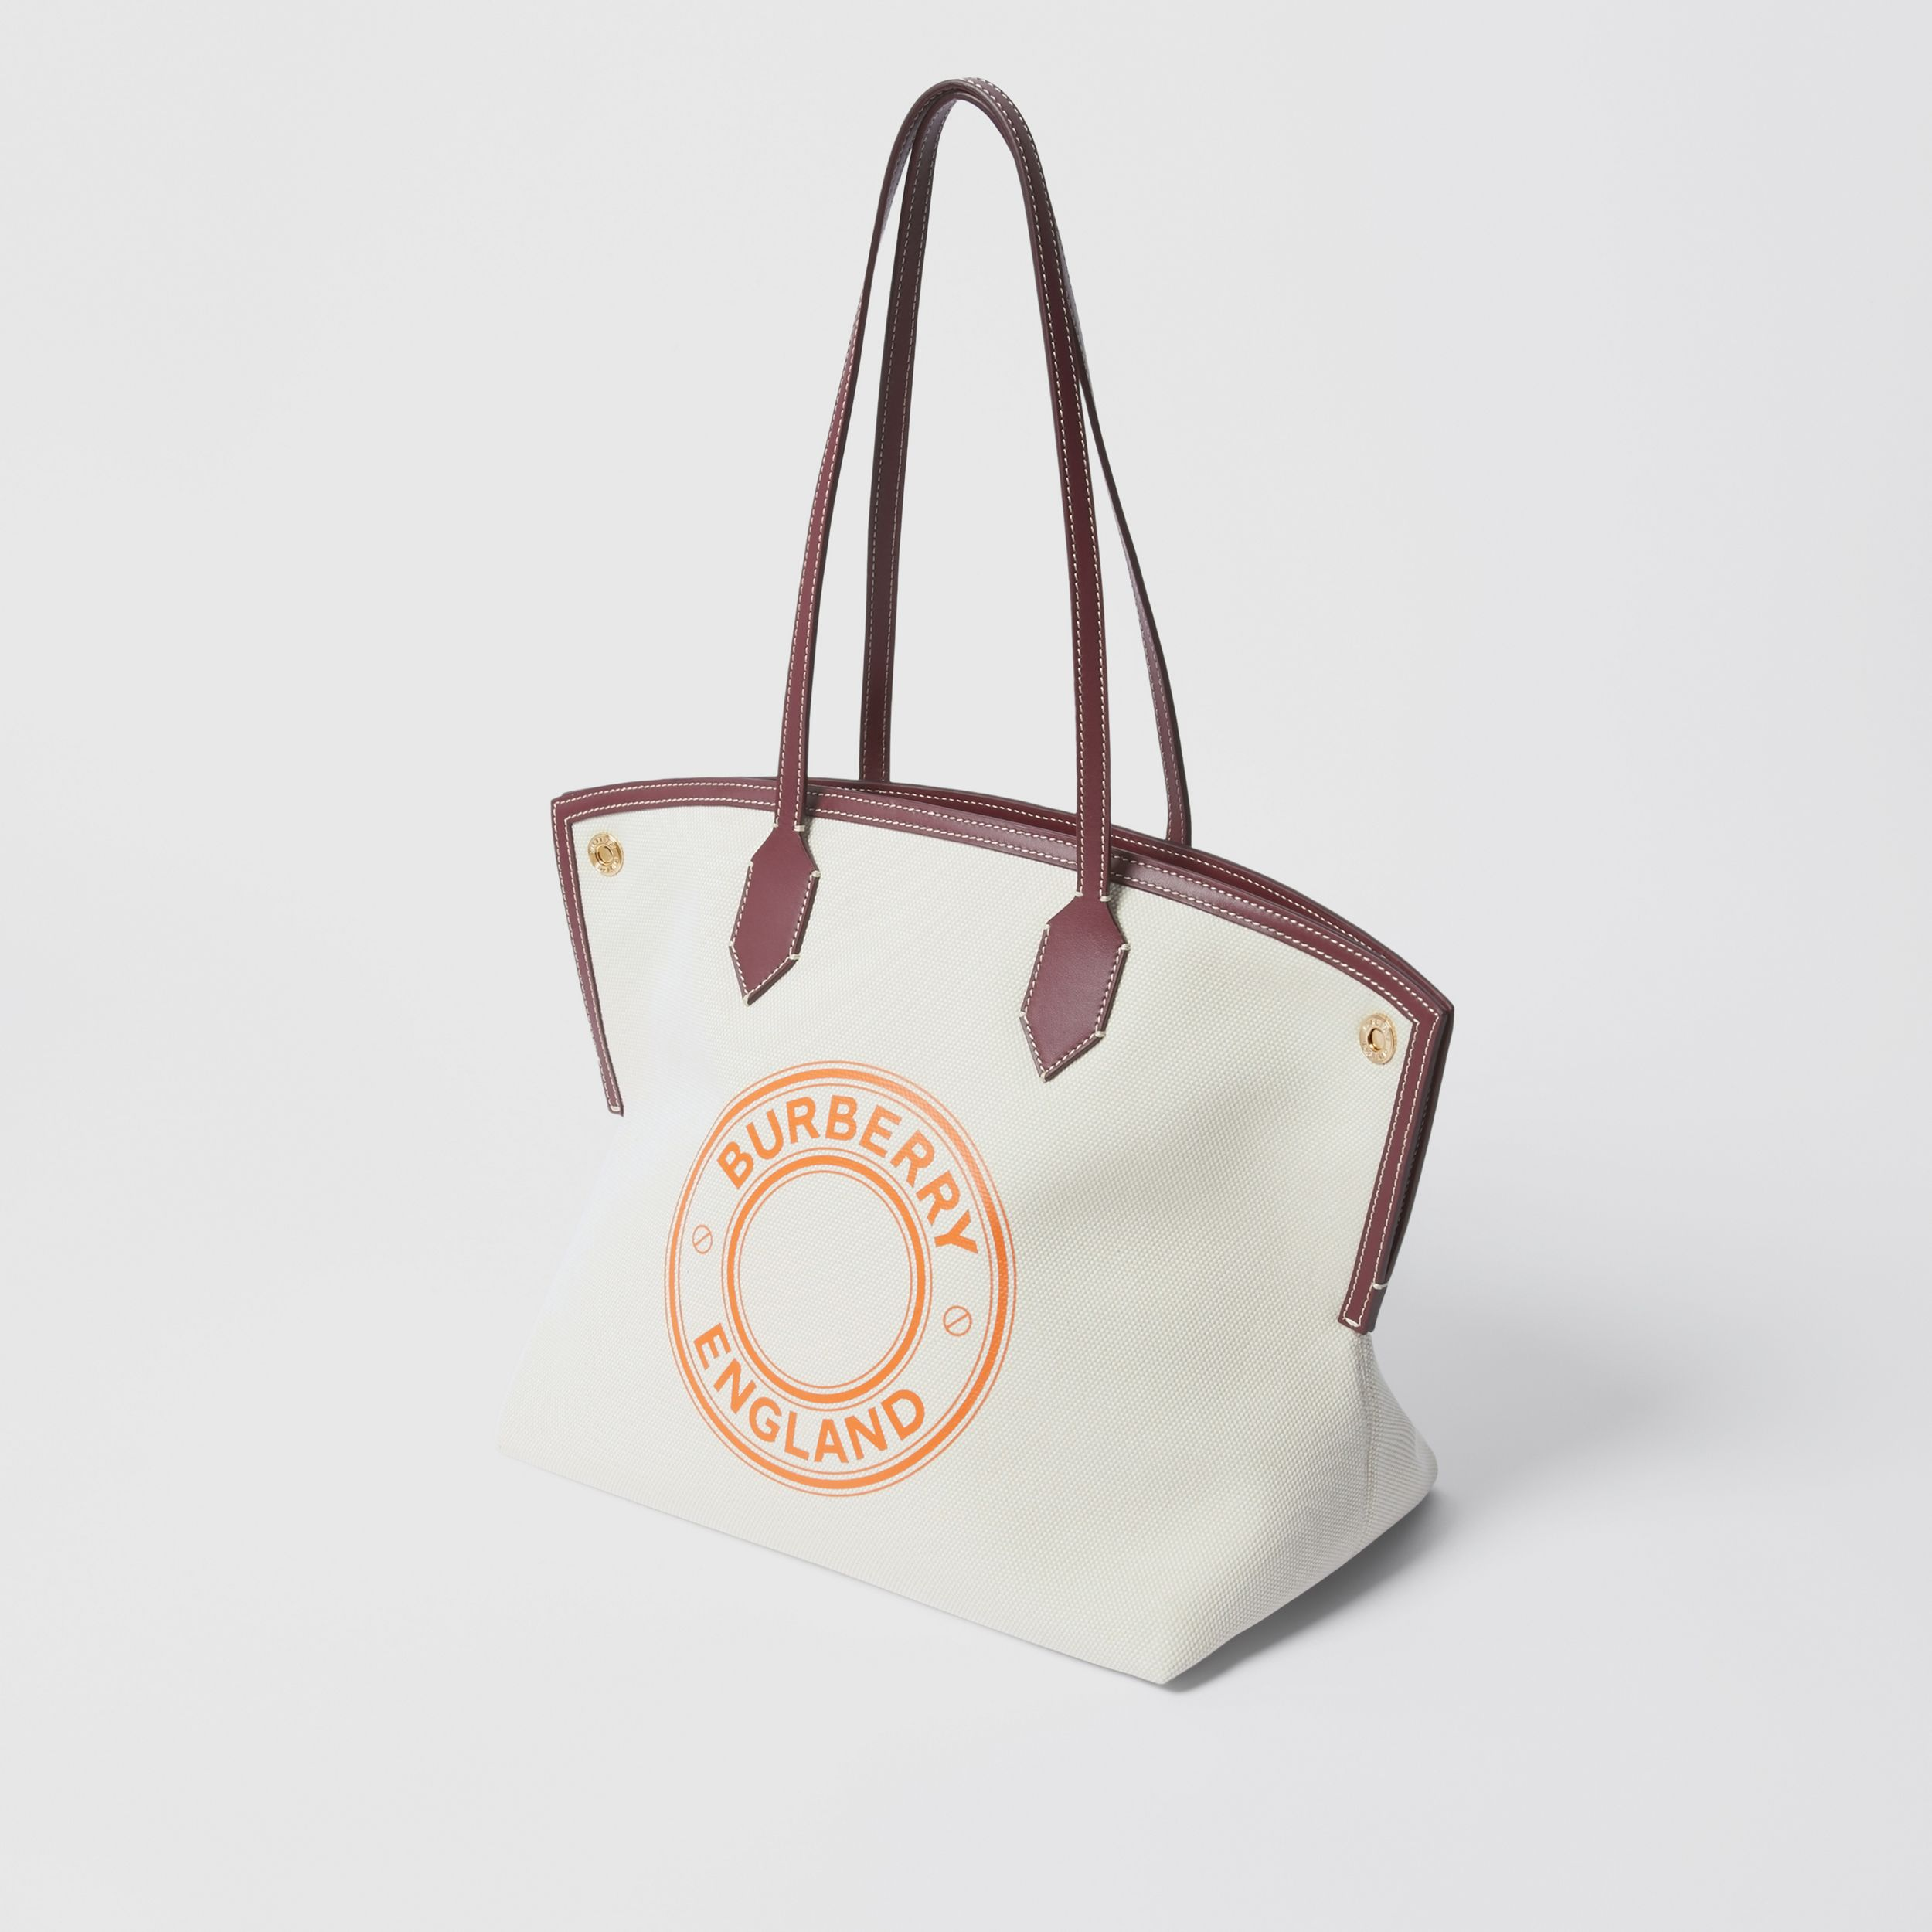 Medium Logo Graphic Cotton Canvas Society Tote in Natural/garnet/geranium - Women | Burberry Australia - 4